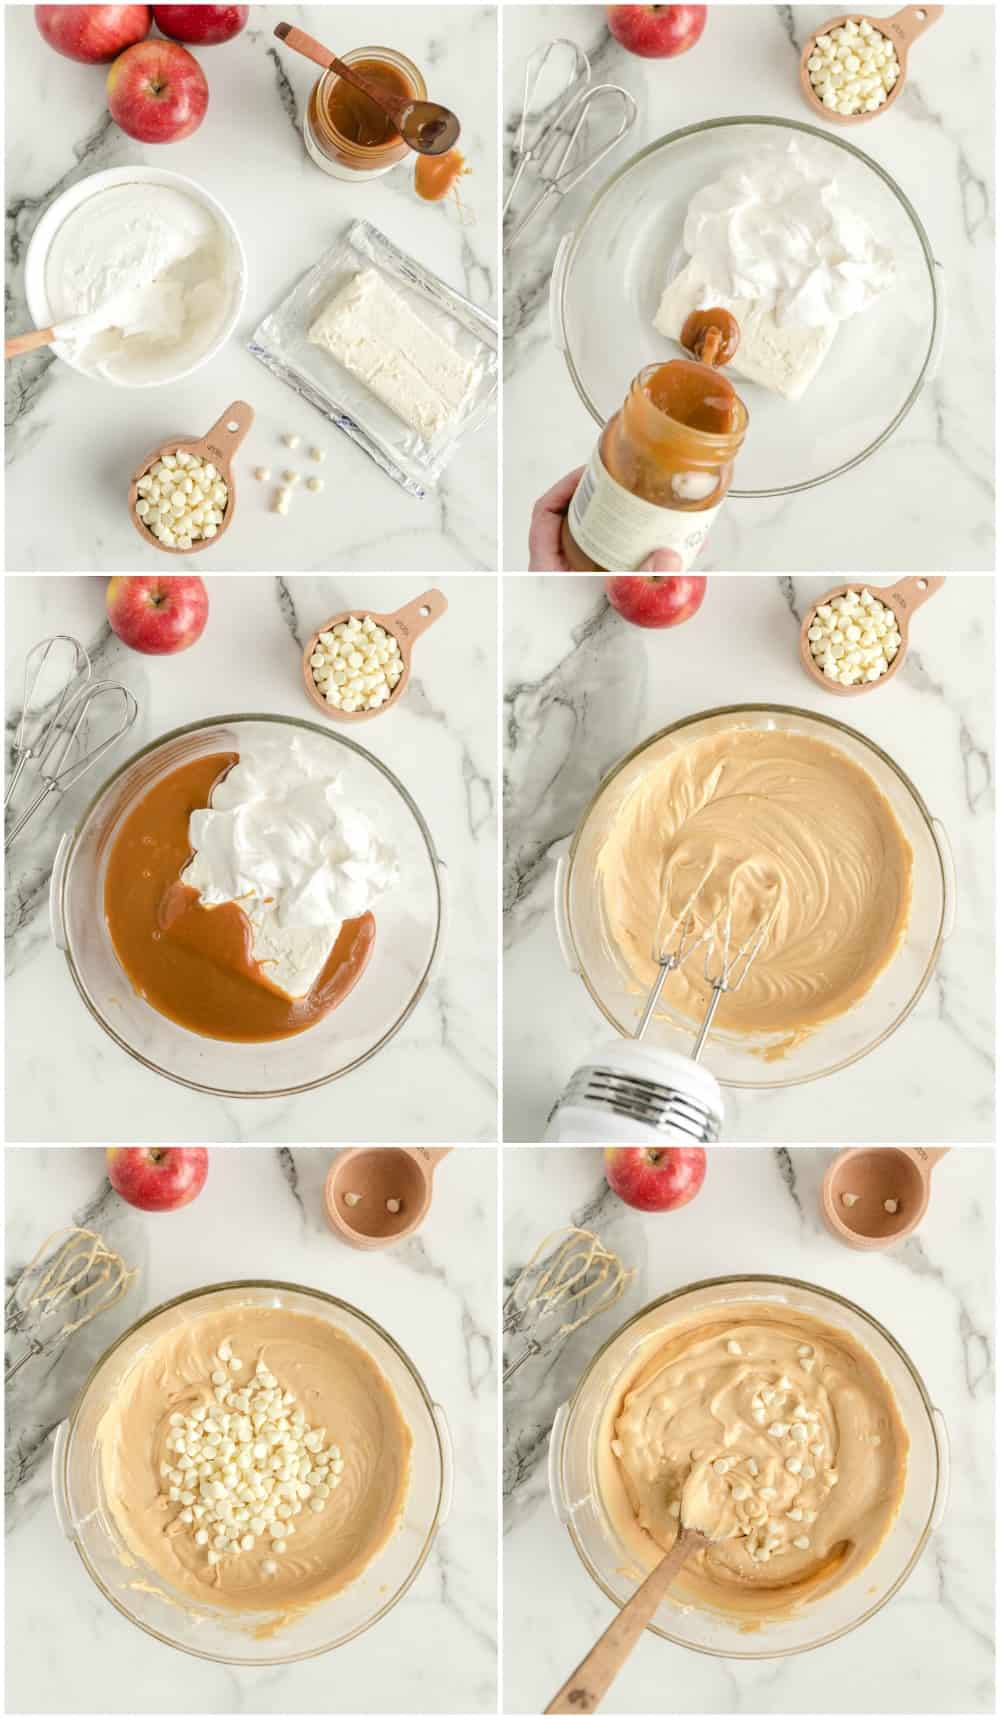 how to make caramel apple dip step by step process shots